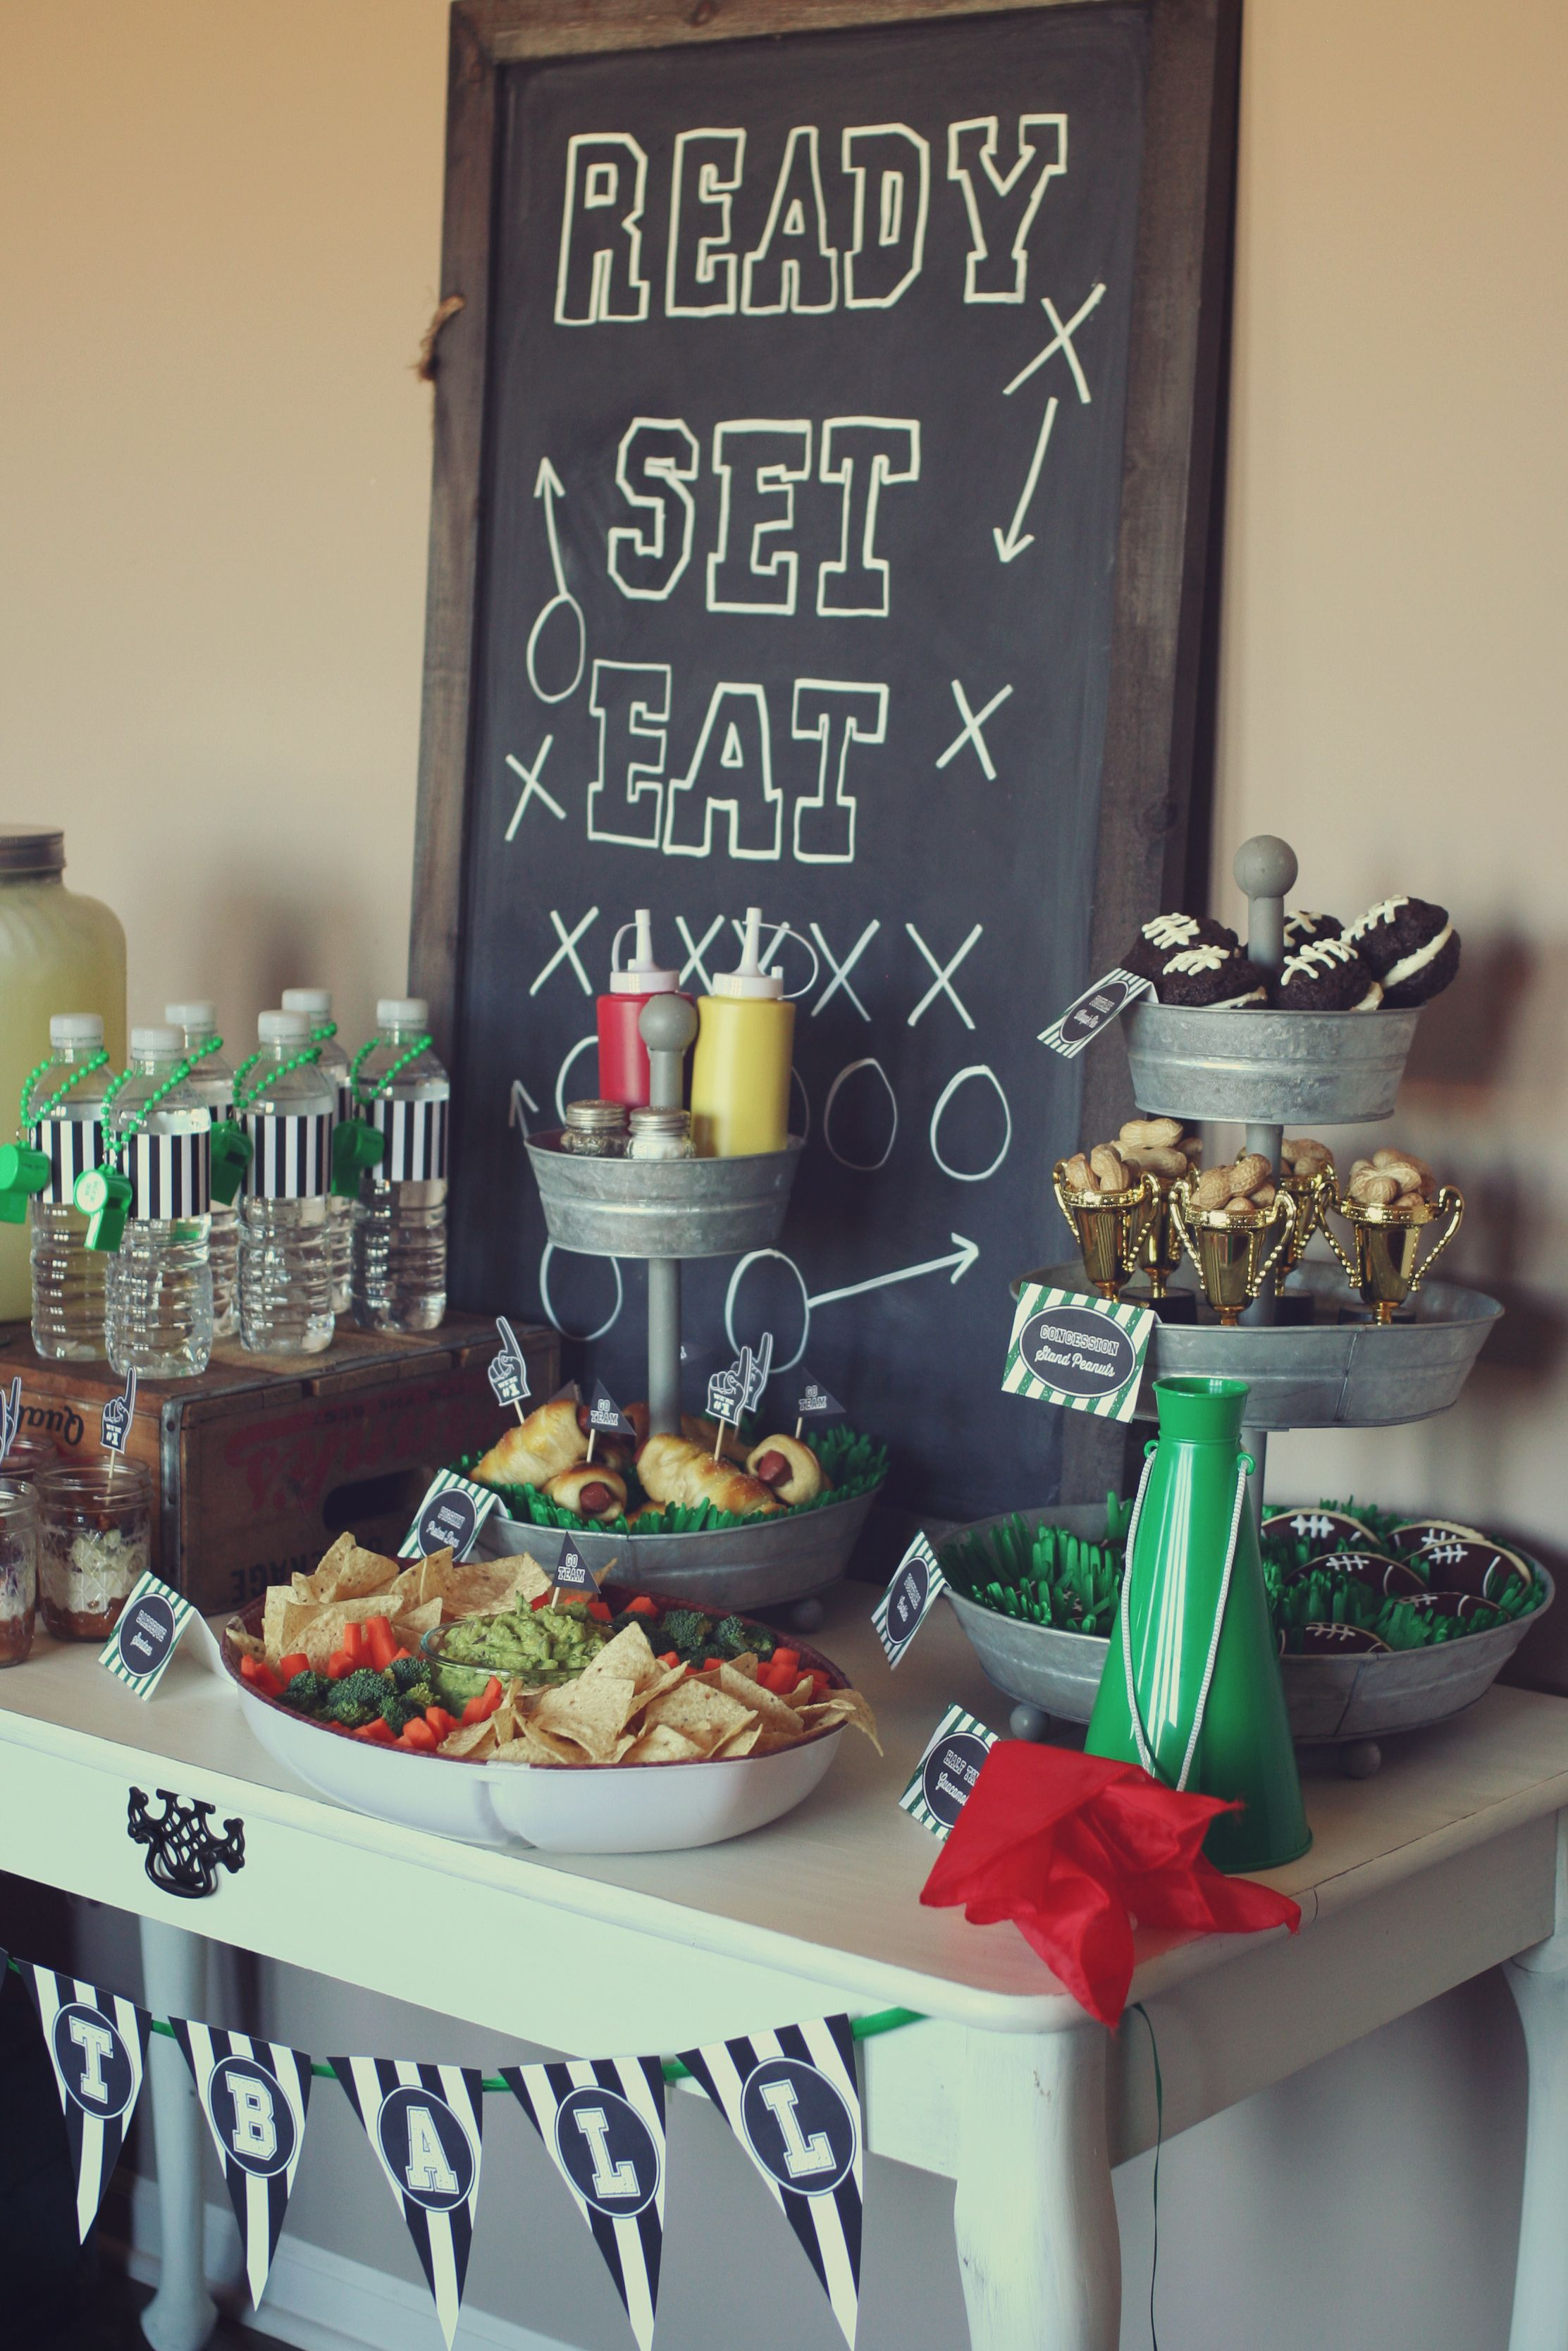 Ready, Set Eat with creative products and food for your